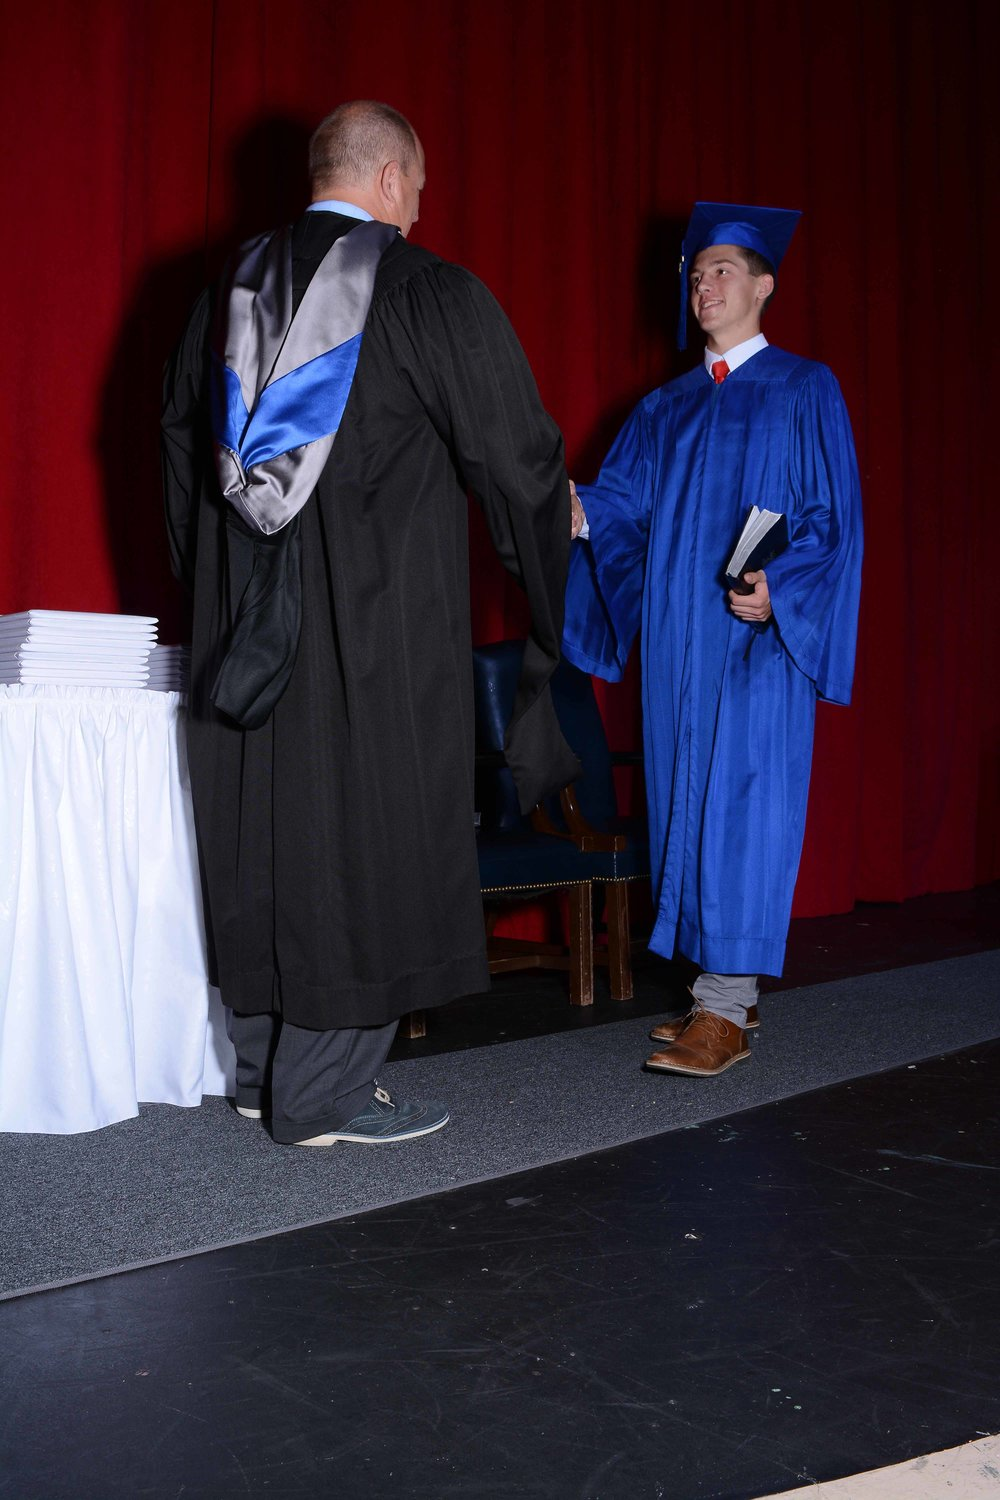 May14 Commencement114.jpg